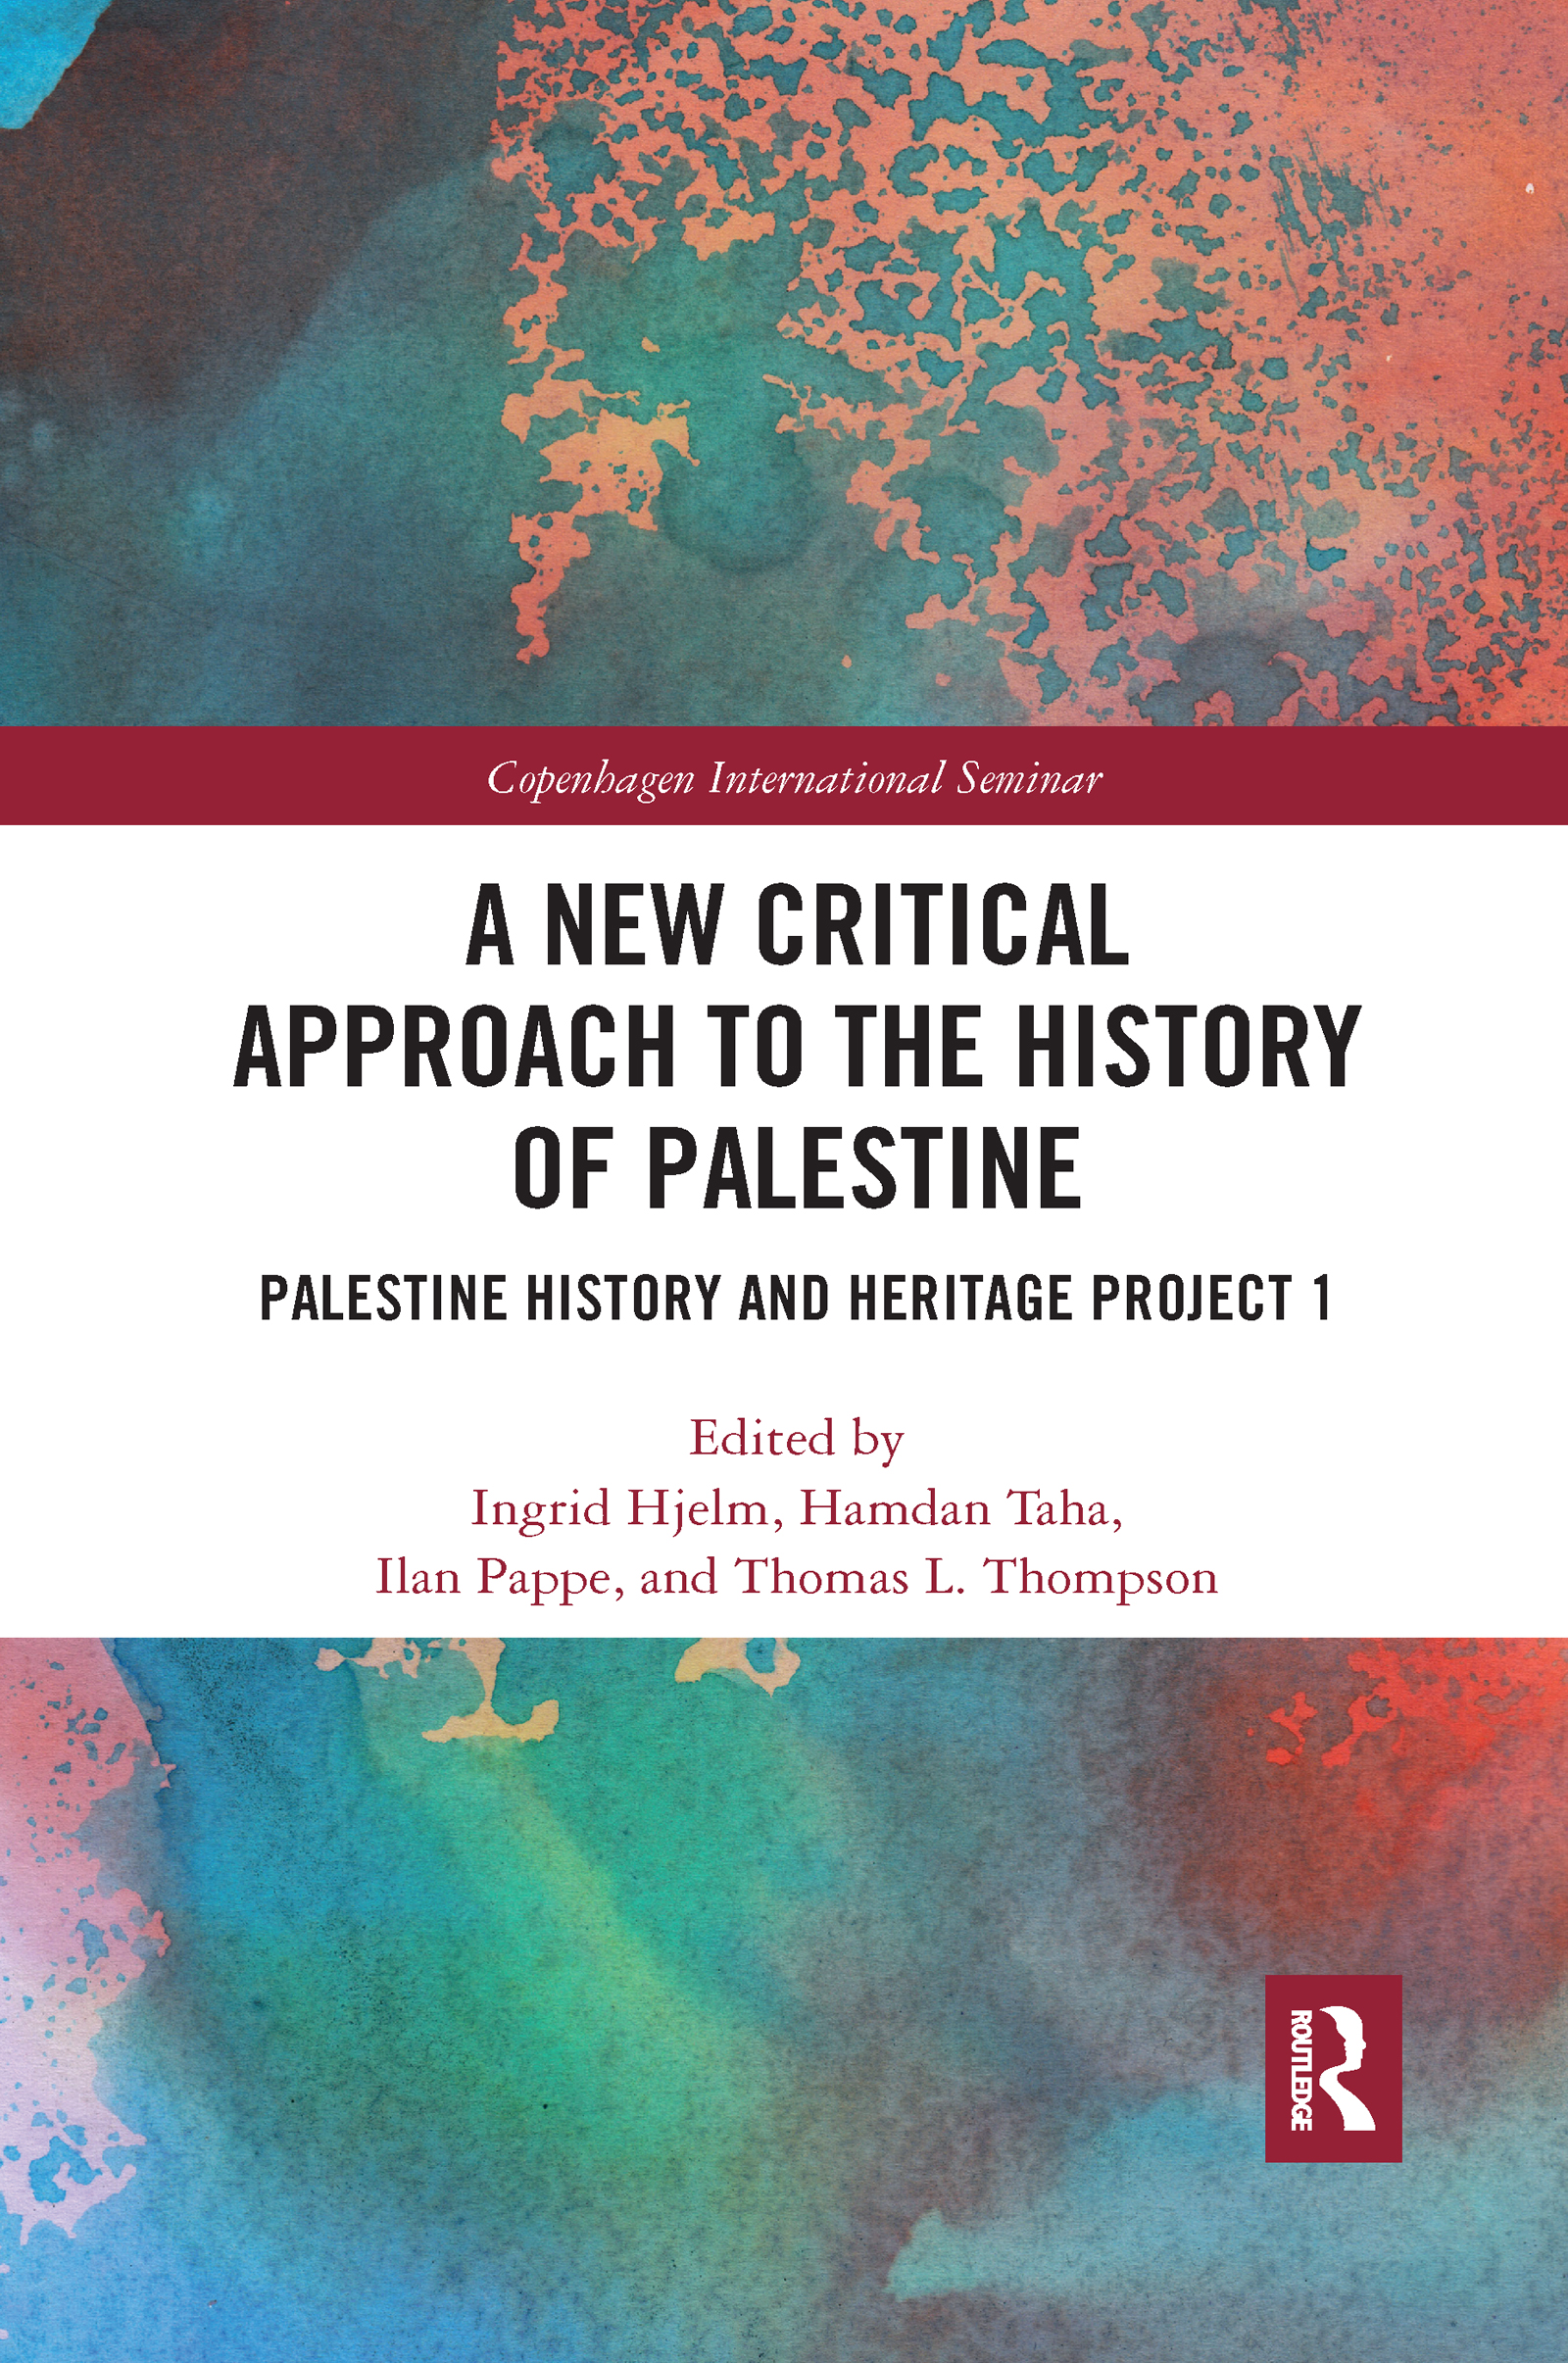 A New Critical Approach to the History of Palestine